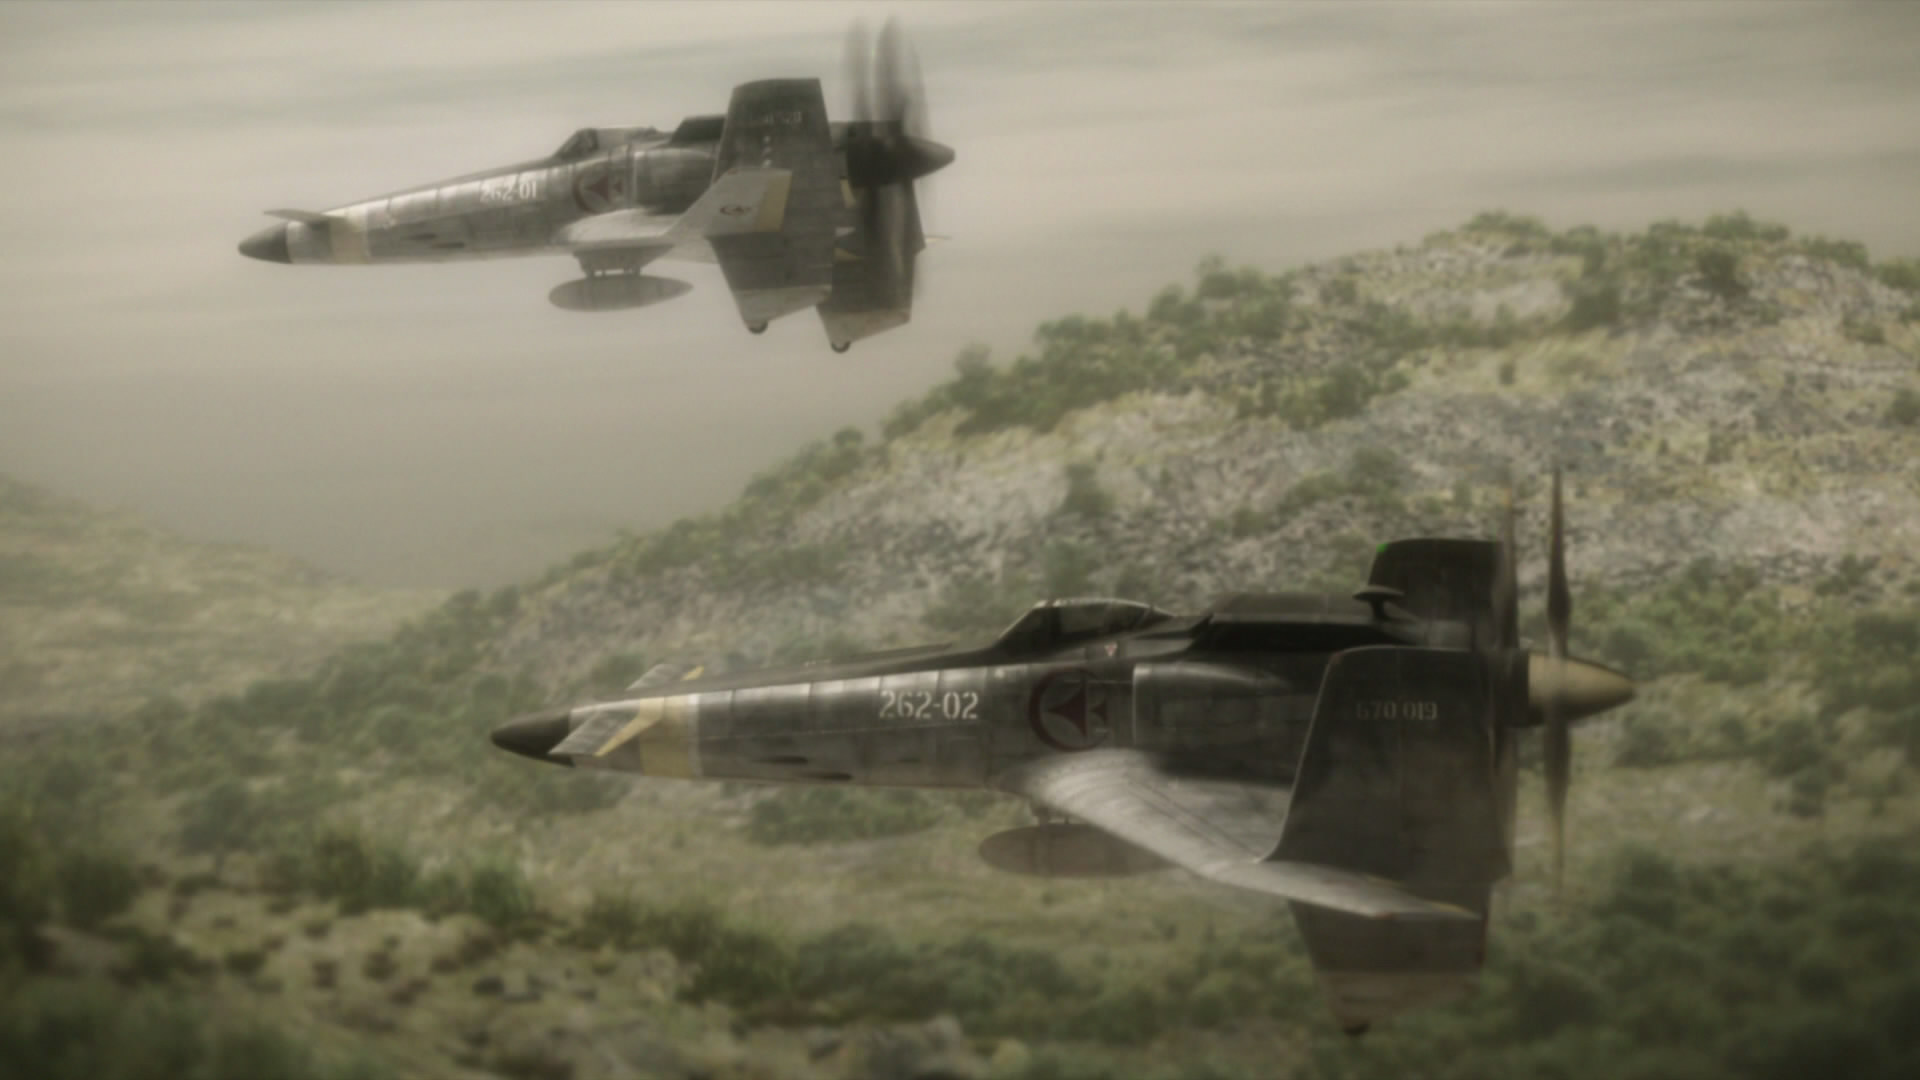 Mamoru Oshii's stunningly animated aerial combat sequences in The Sky Crawlers (2008)